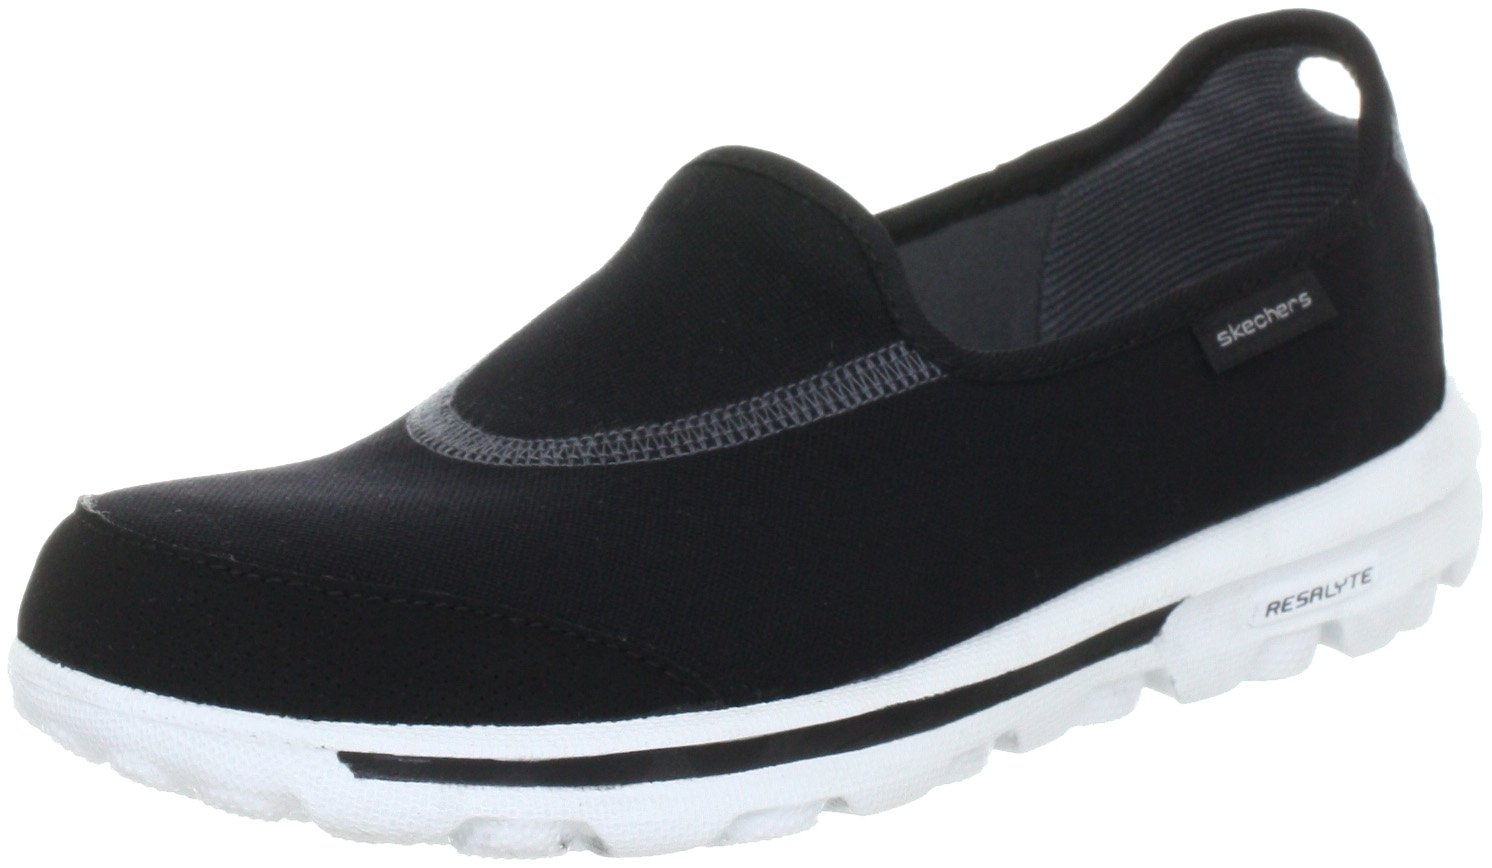 Skechers Performance Footwear Women's Go Walk Slip-On